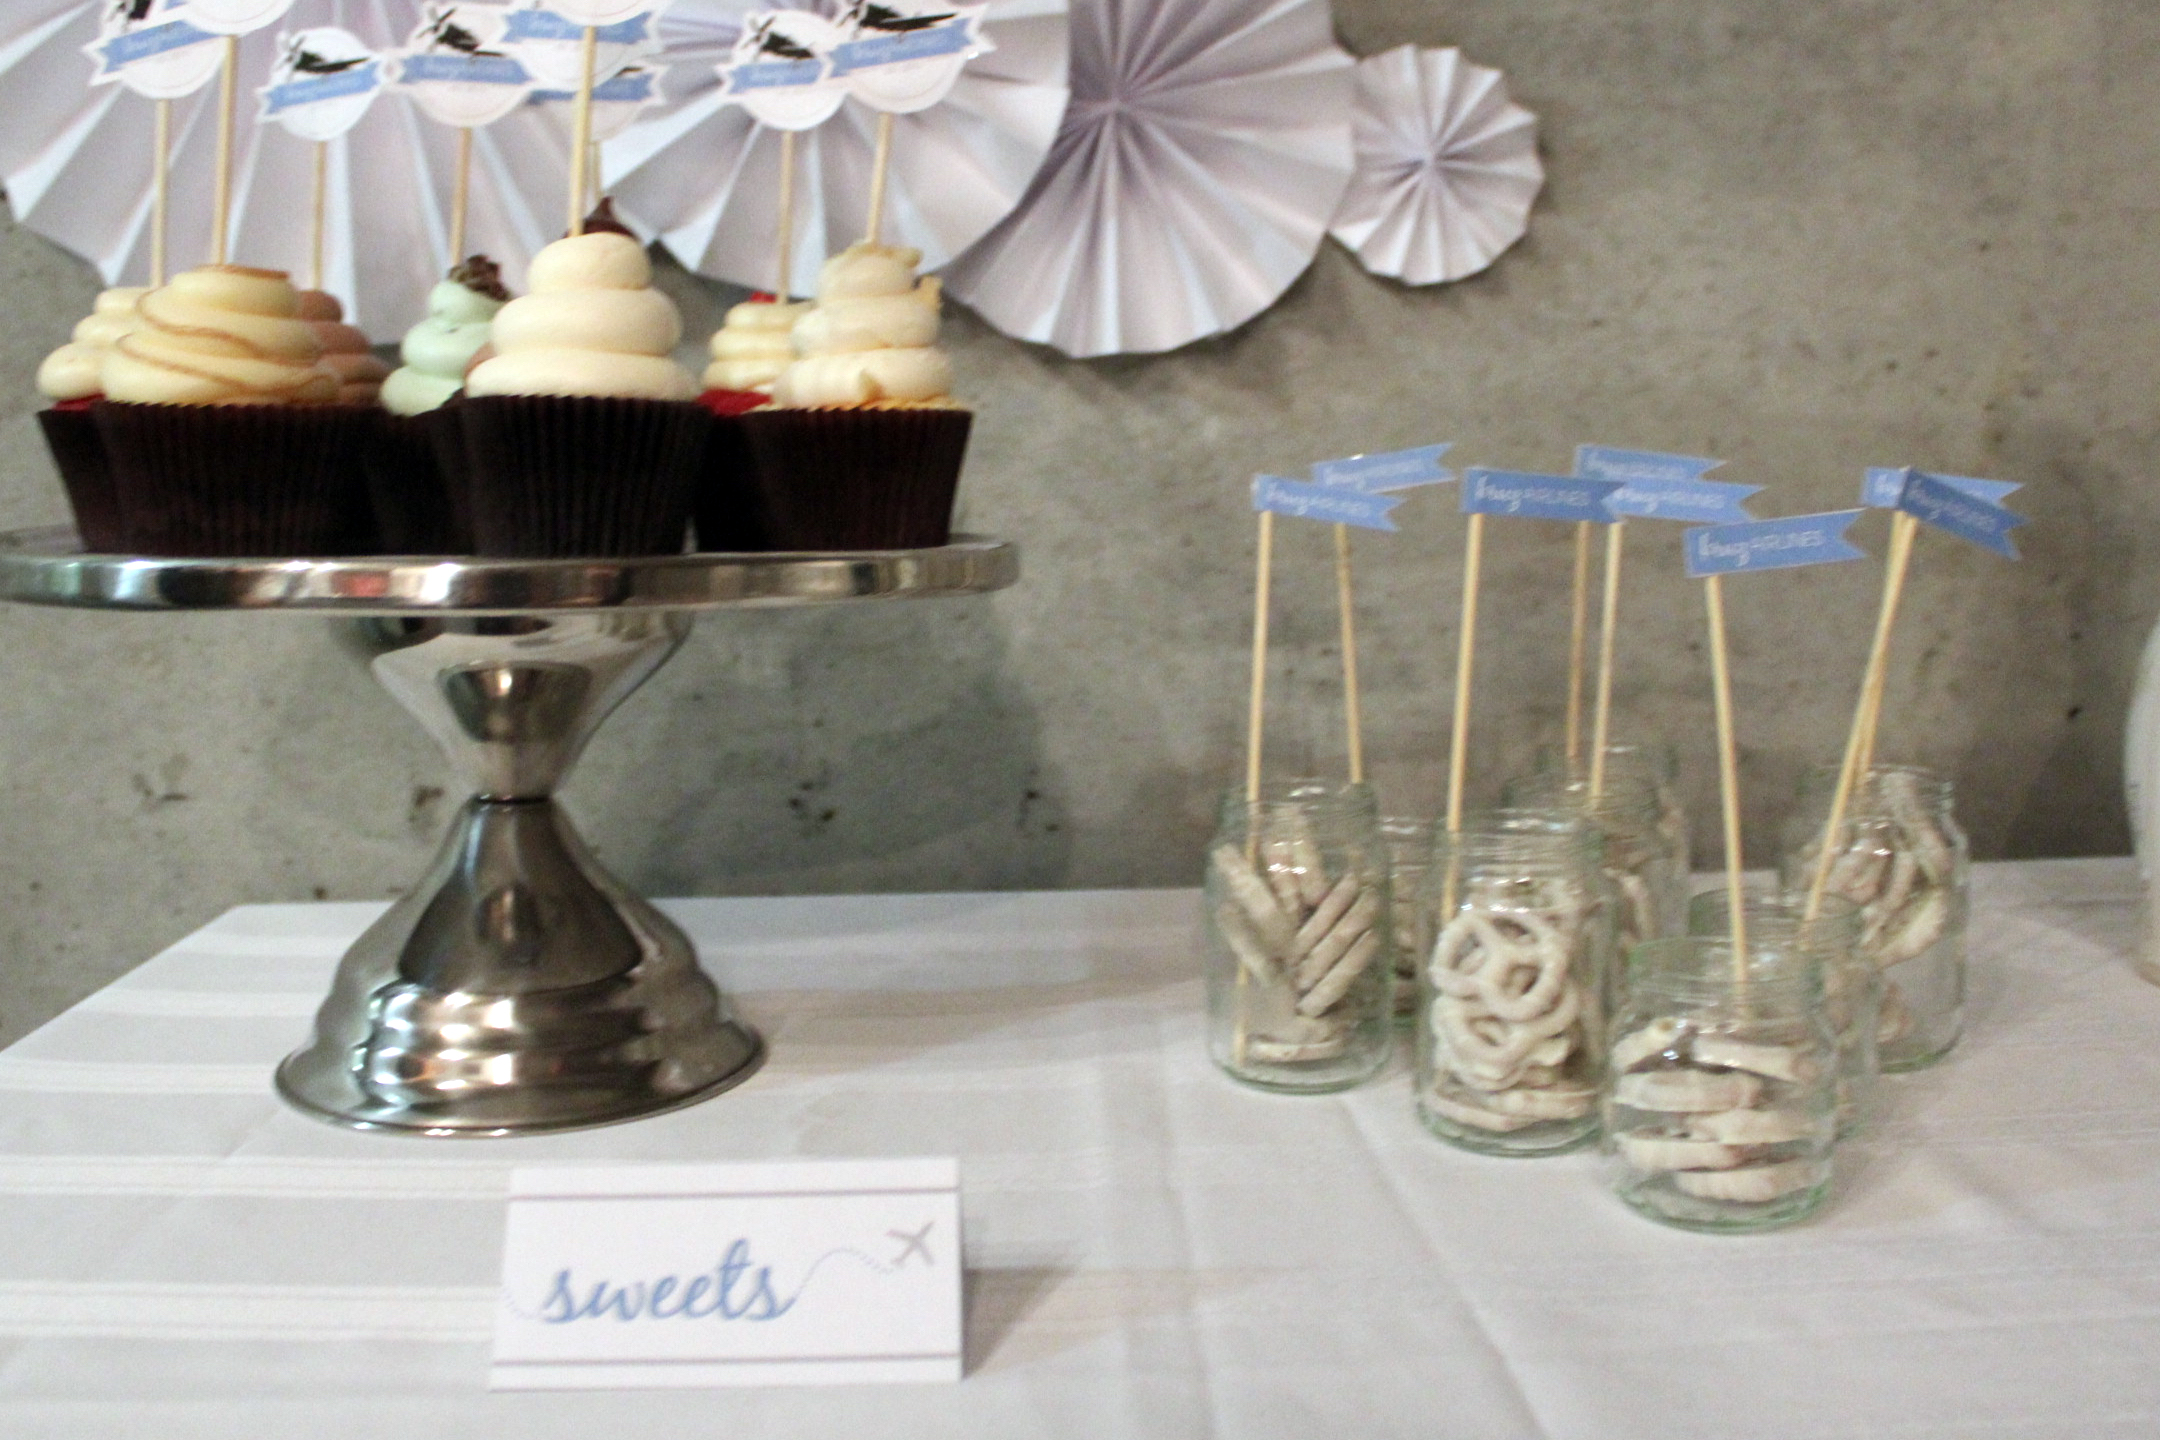 Passport Airline Event Decor Sweets.jpg